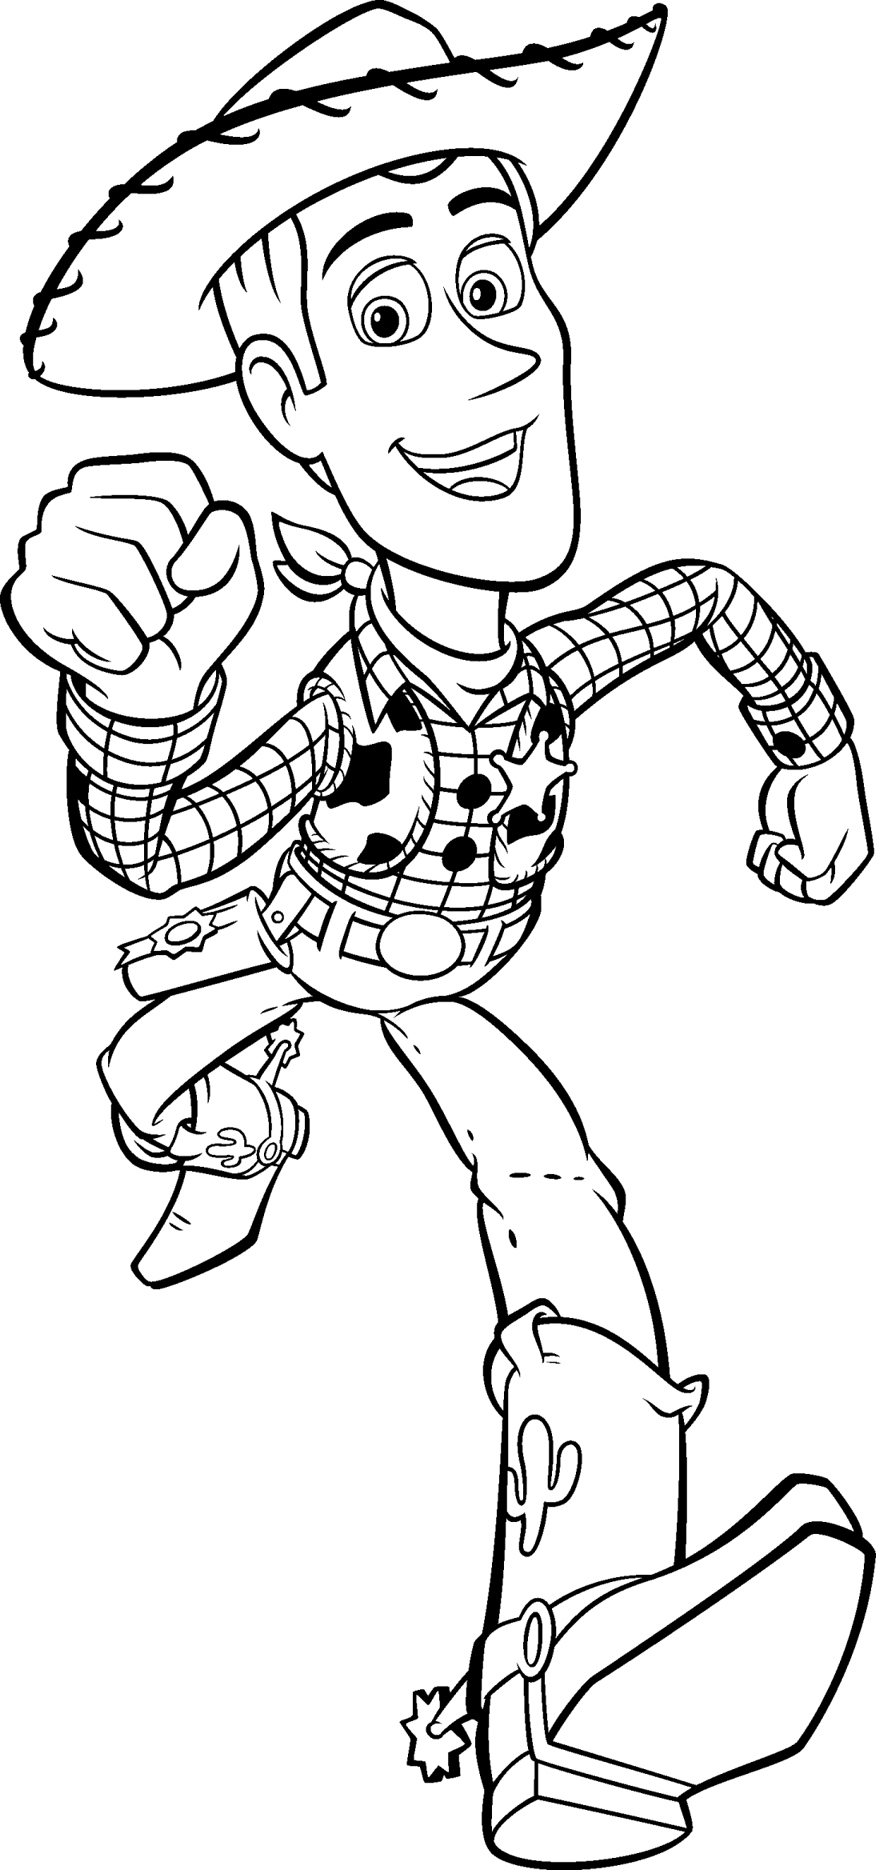 How To Draw Toy Story Characters Coloring Home Toy Story Alien Coloring Page S Ca E Edfe together with Upgduqg moreover Toy Story Para Colorir E Pintar X also Buzz Lightyear Try To Go Up Stair Coloring Page moreover Ben Coloring Pages. on toy story alien coloring pages